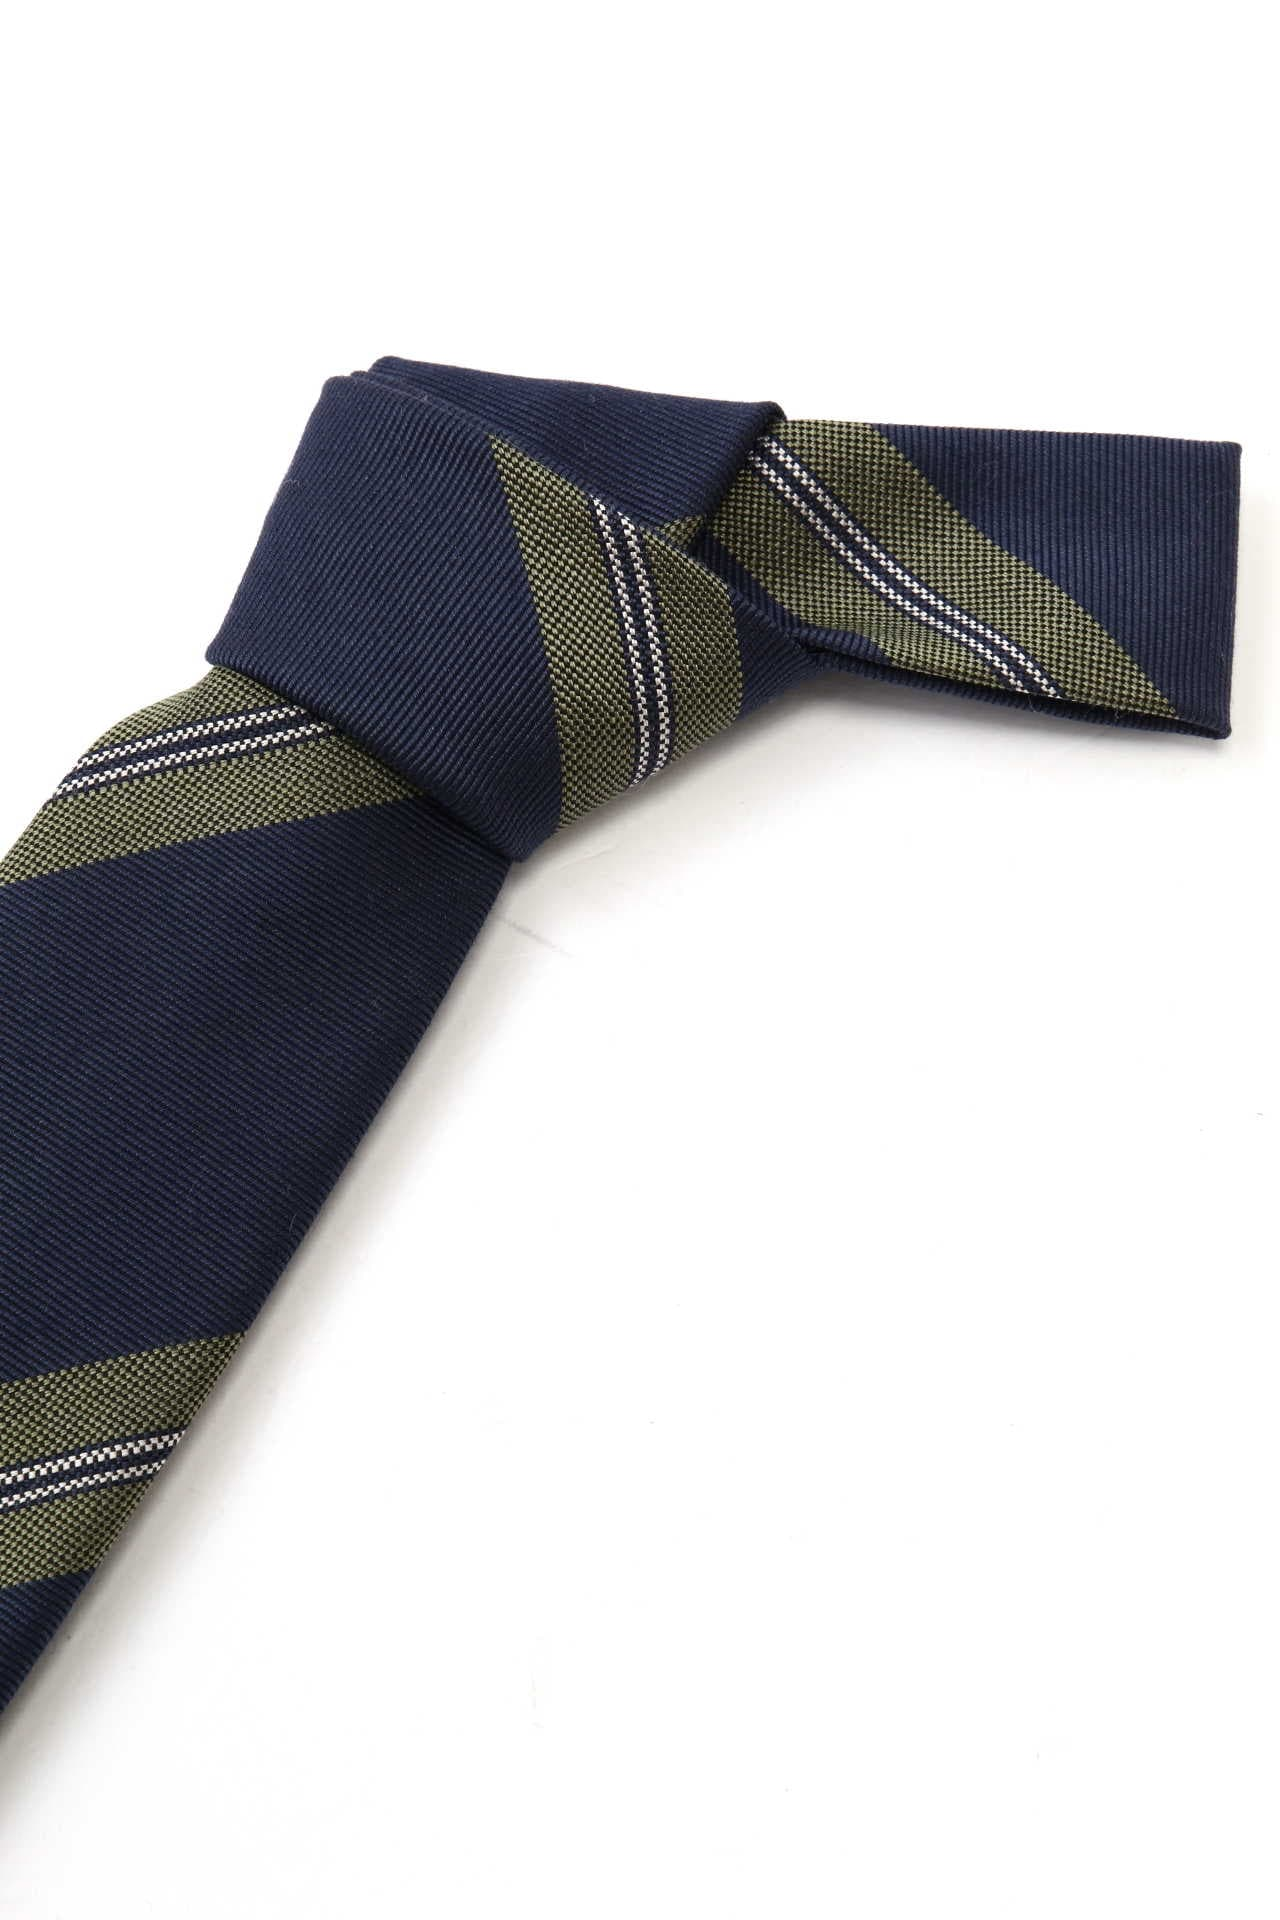 ALTERNATE STRIPE TIE2